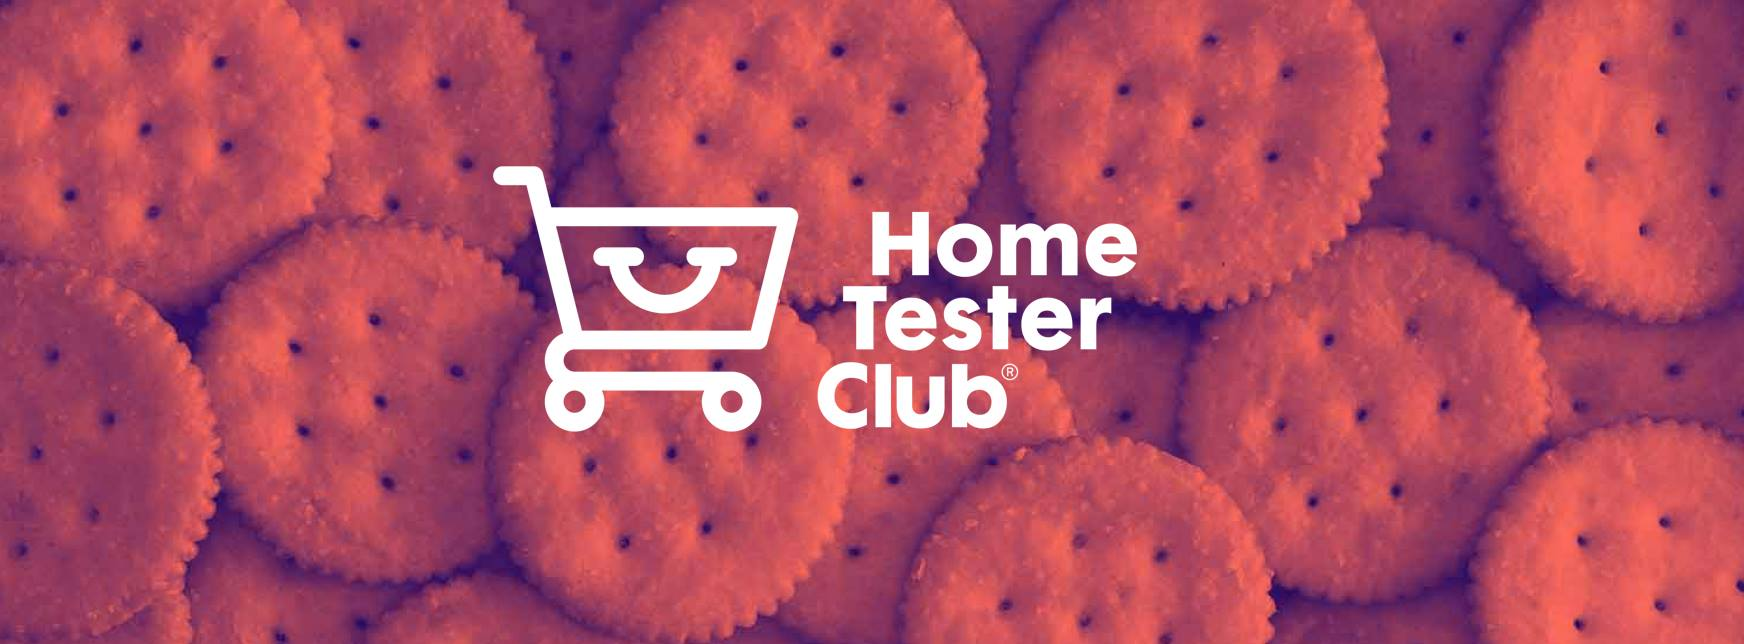 How can I apply for product tests on the Home Tester Club